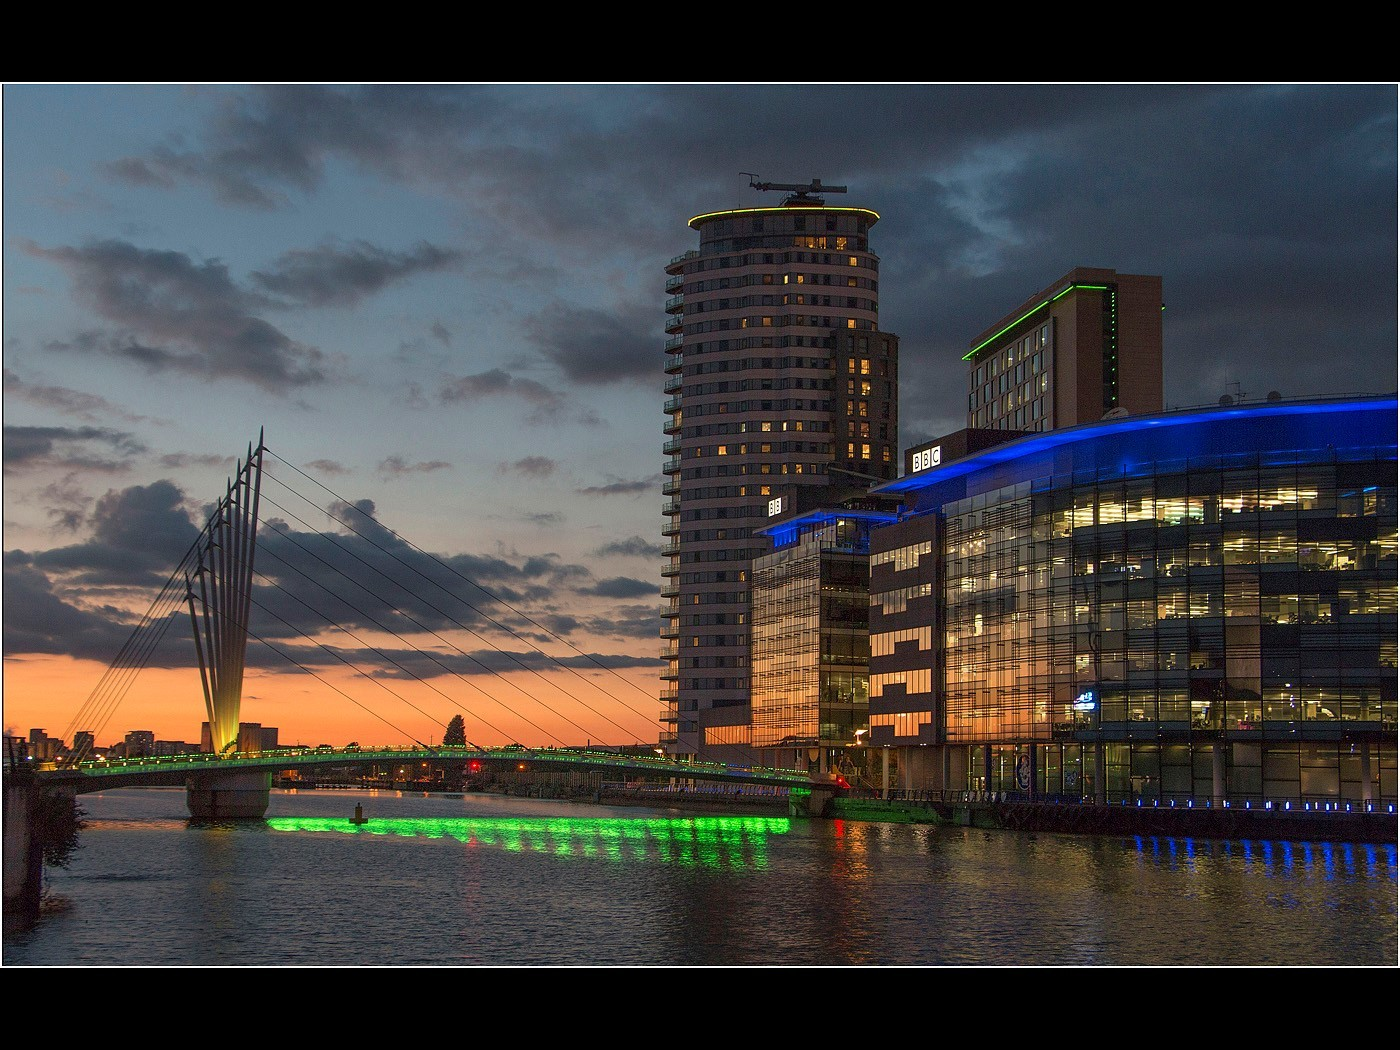 Footbridge & Media City Illuminated, Salford Quays